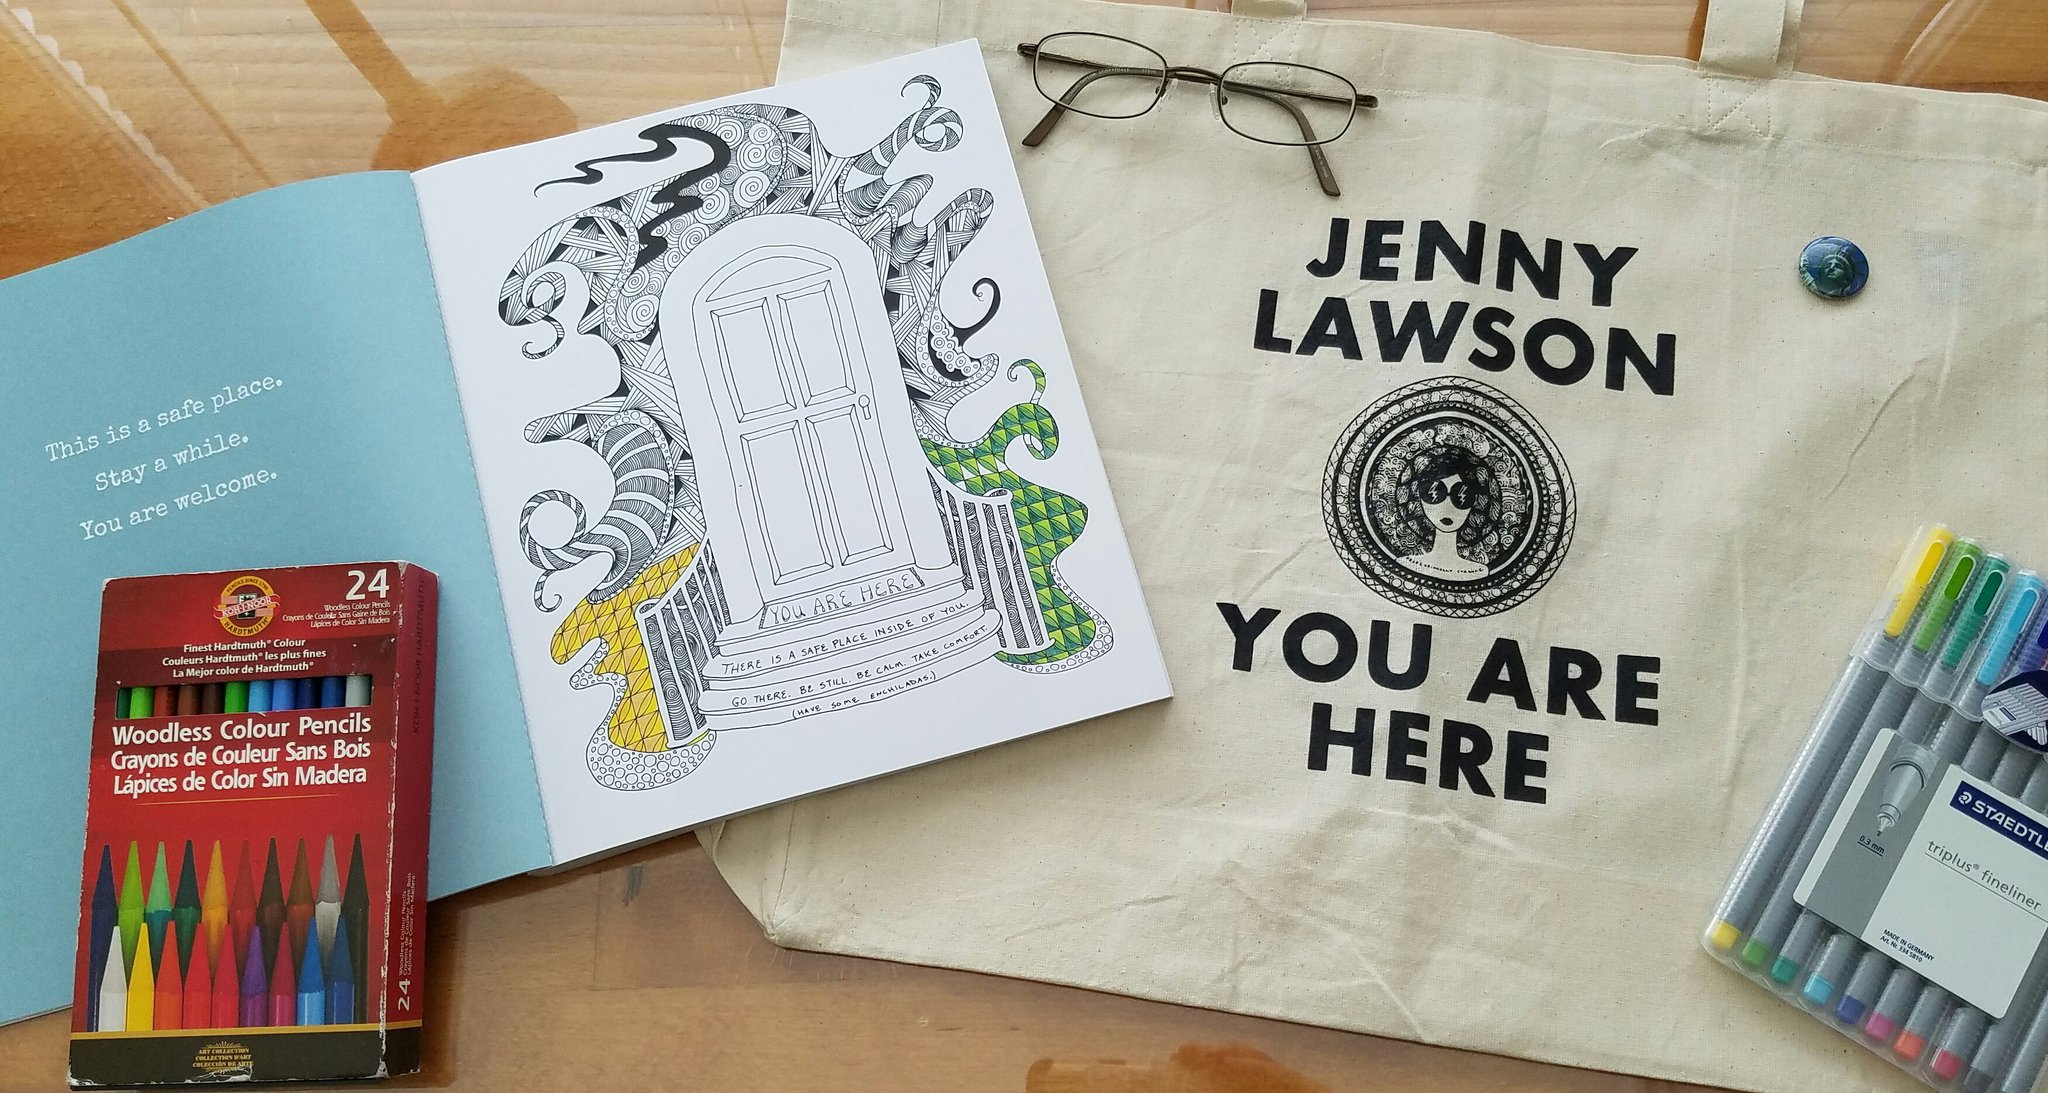 @TheBloggess Your book has my 100% coloring endorsement, the bag is perfect, u r amazing, so no worries about marketing, just get better!! https://t.co/RjJmVJd06I